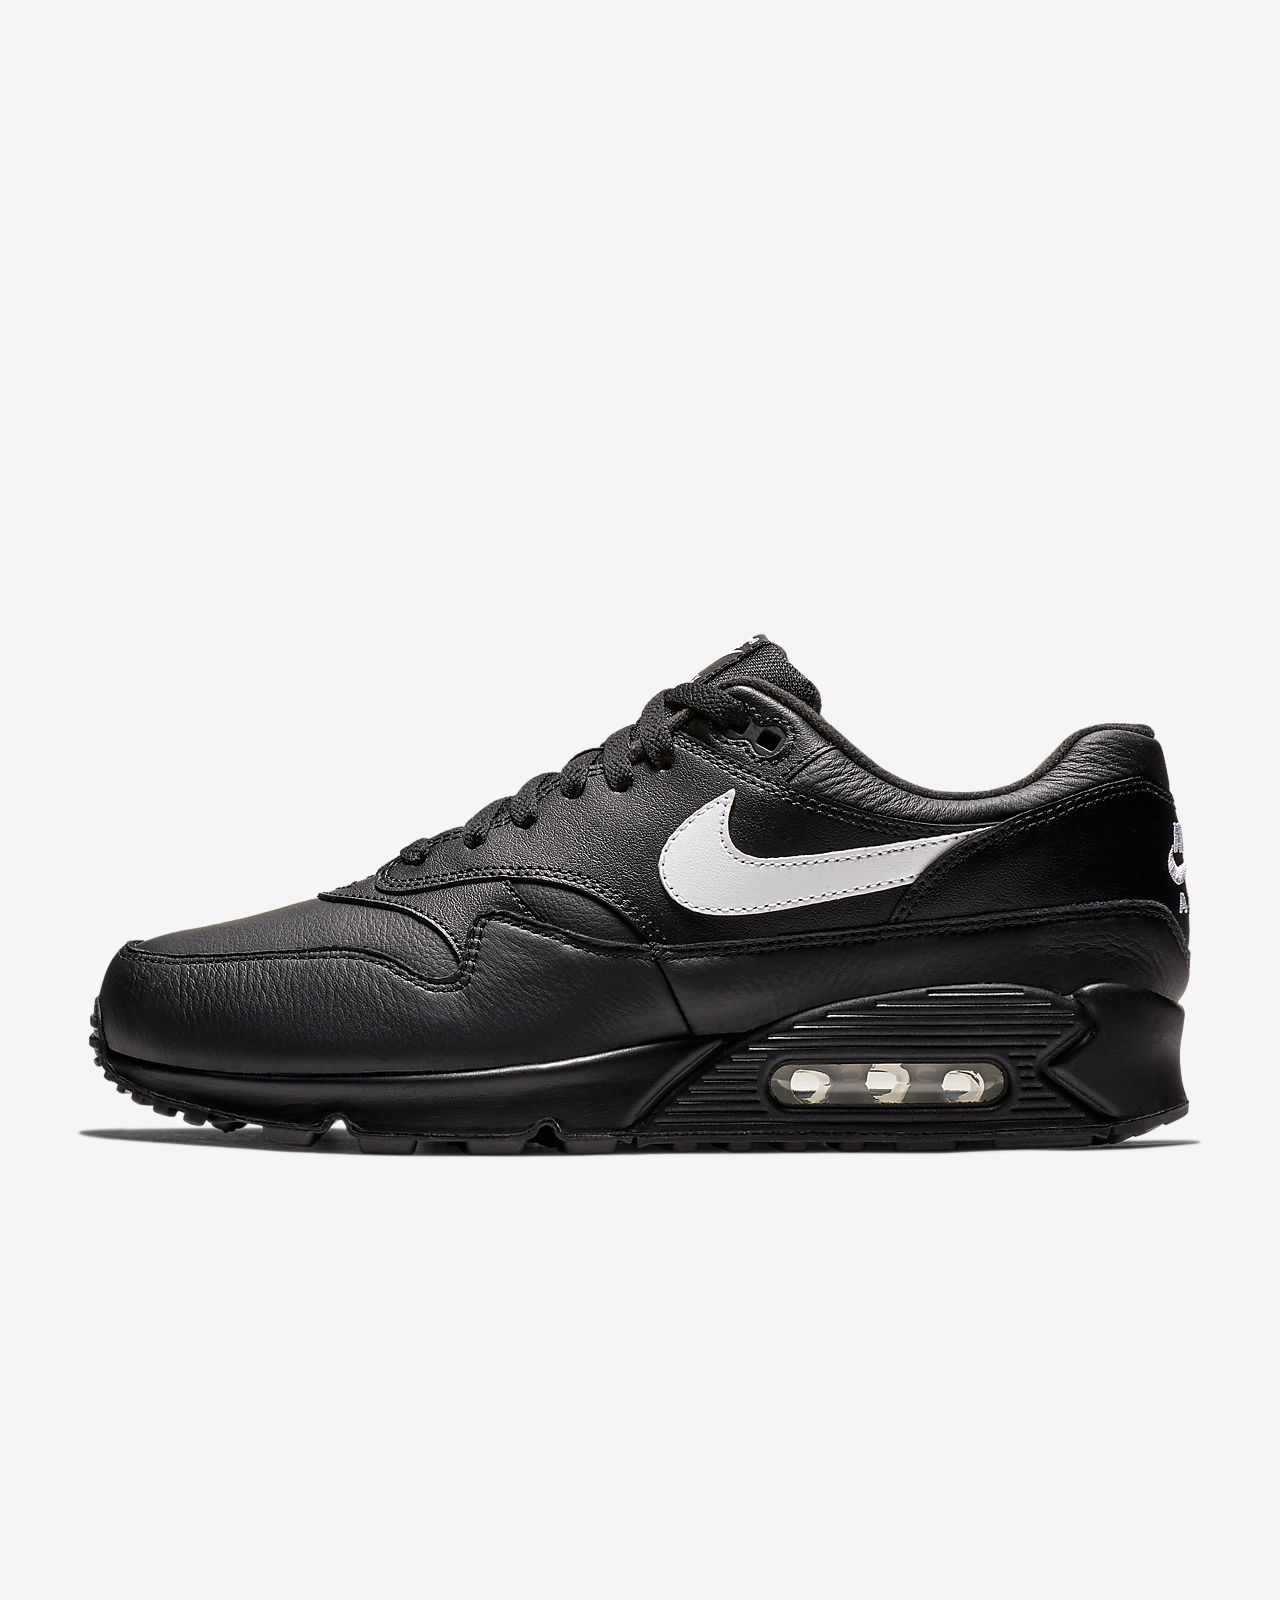 new arrival ccf5e a7d52 ... Chaussure Nike Air Max 901 pour Homme